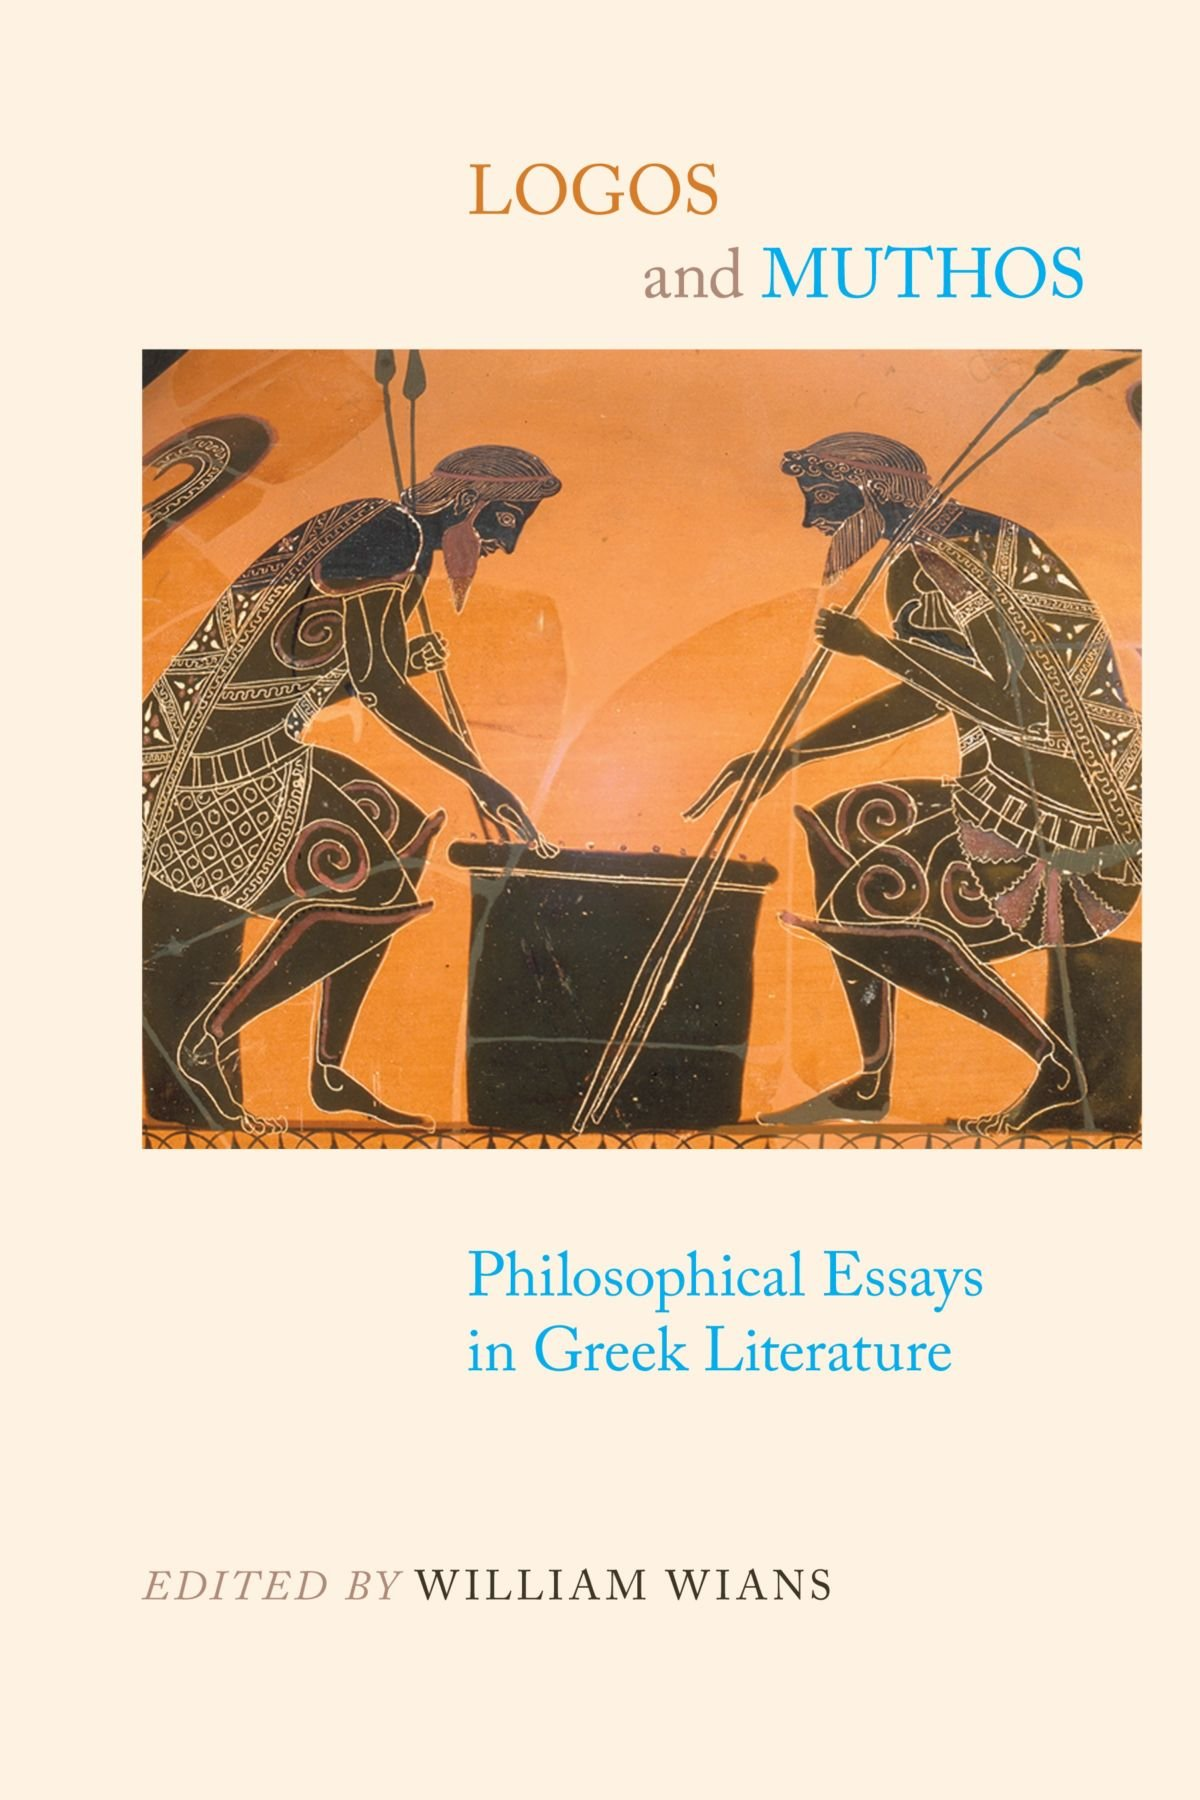 logos and muthos philosophical essays in greek literature suny logos and muthos philosophical essays in greek literature suny series in ancient greek philosophy william wians 9781438427362 com books